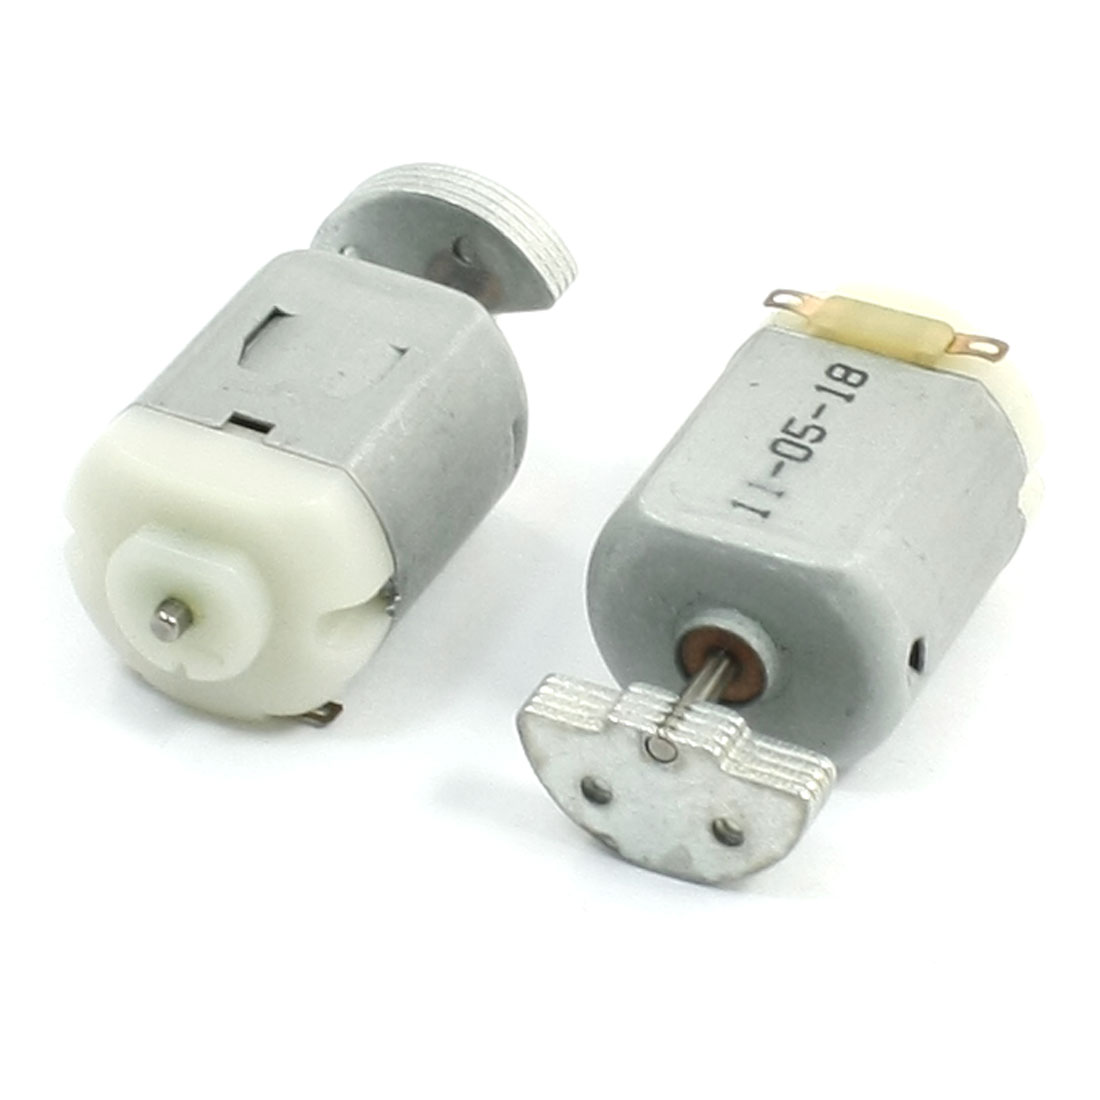 2pcs D Shape Shaft Cylinder Electric Mini Vibration Motor 5200RPM 3VDC